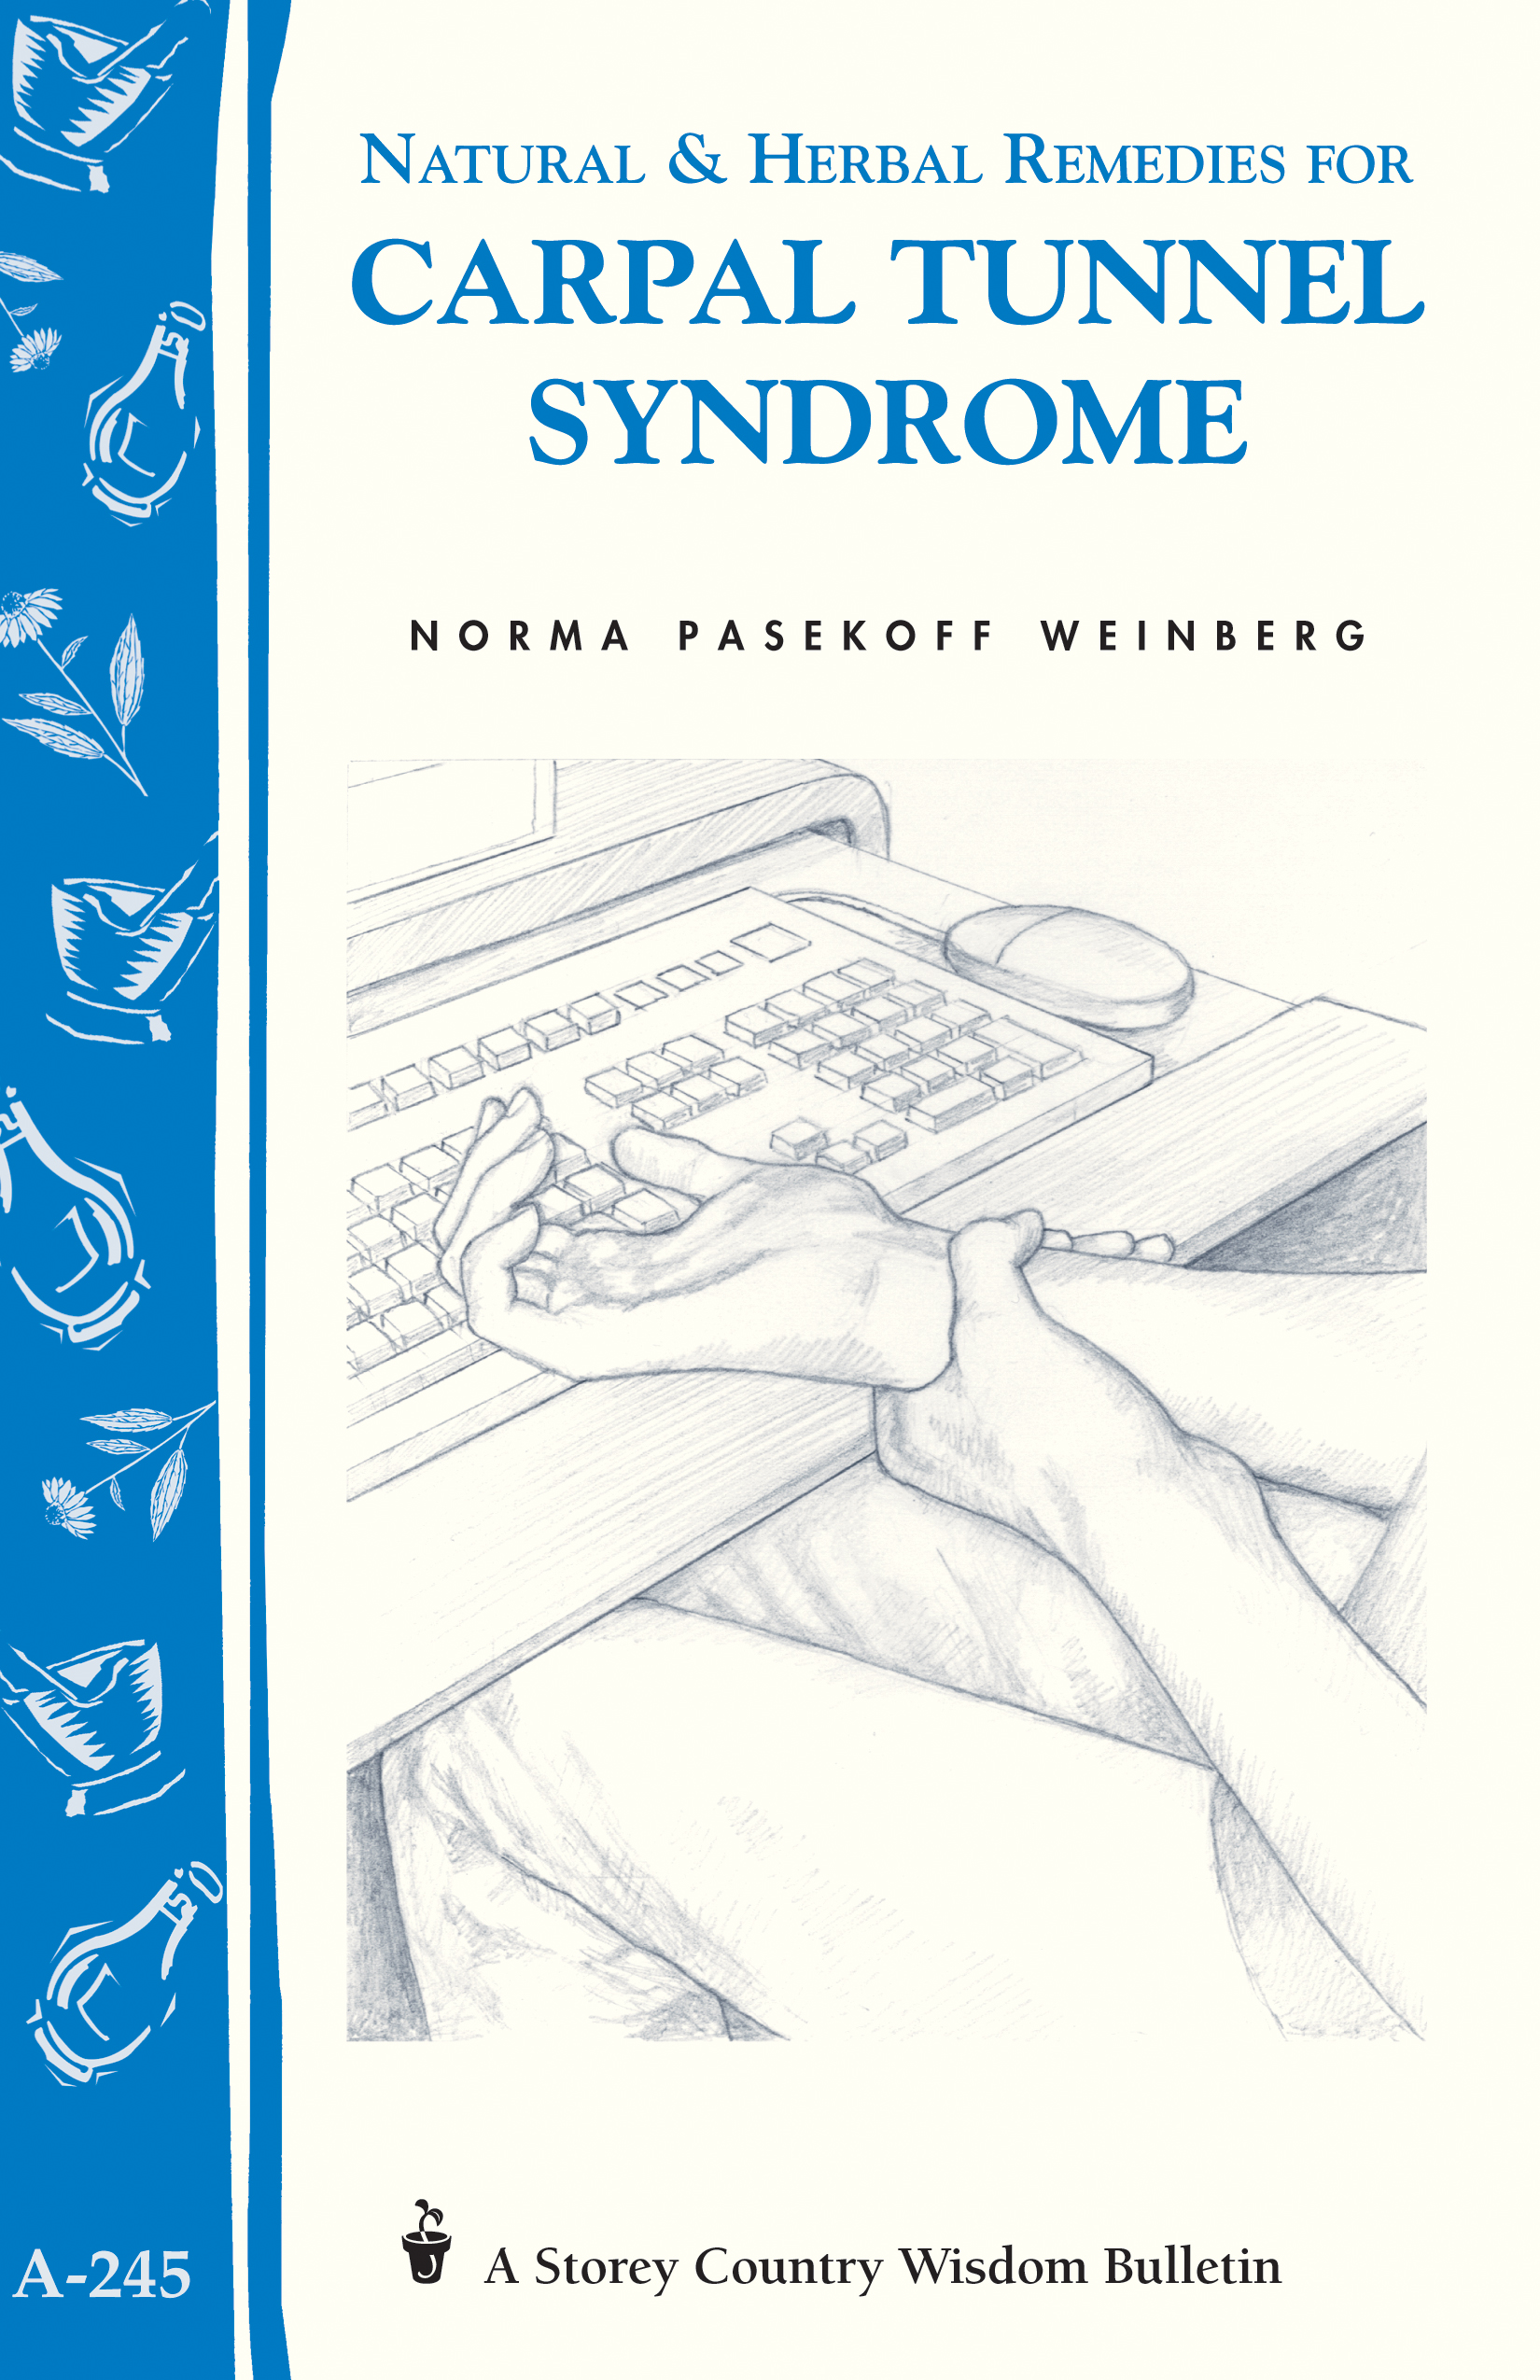 Natural & Herbal Remedies for Carpal Tunnel Syndrome Storey Country Wisdom Bulletin A-245 - Norma Pasekoff Weinberg